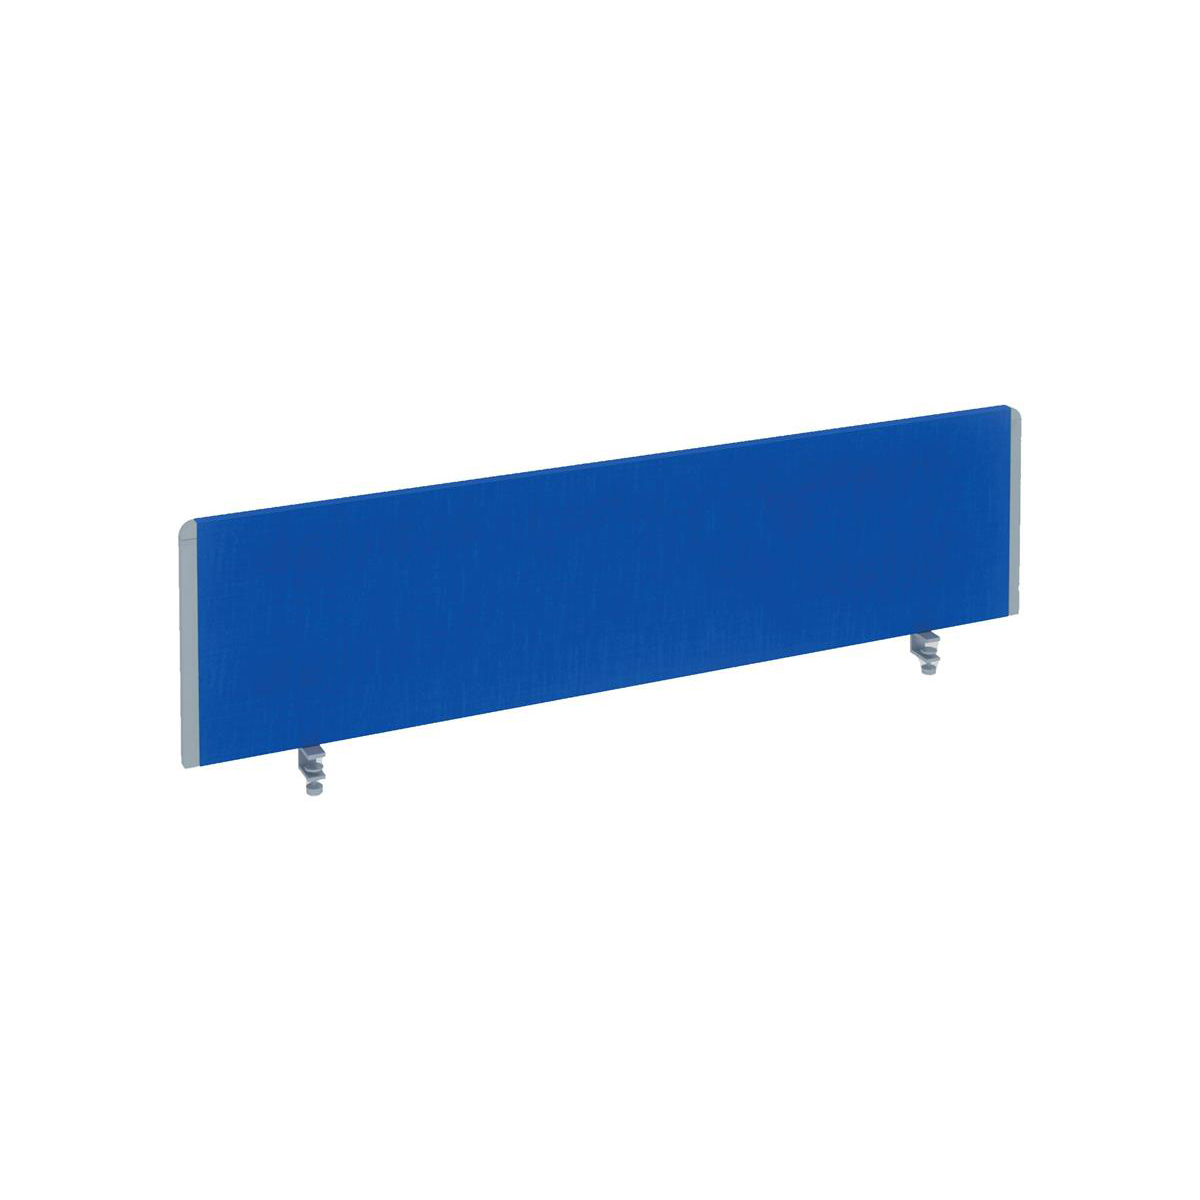 Trexus 1600mm x 300mm Rectangular Screen Blue 1600x450mm Ref 671121